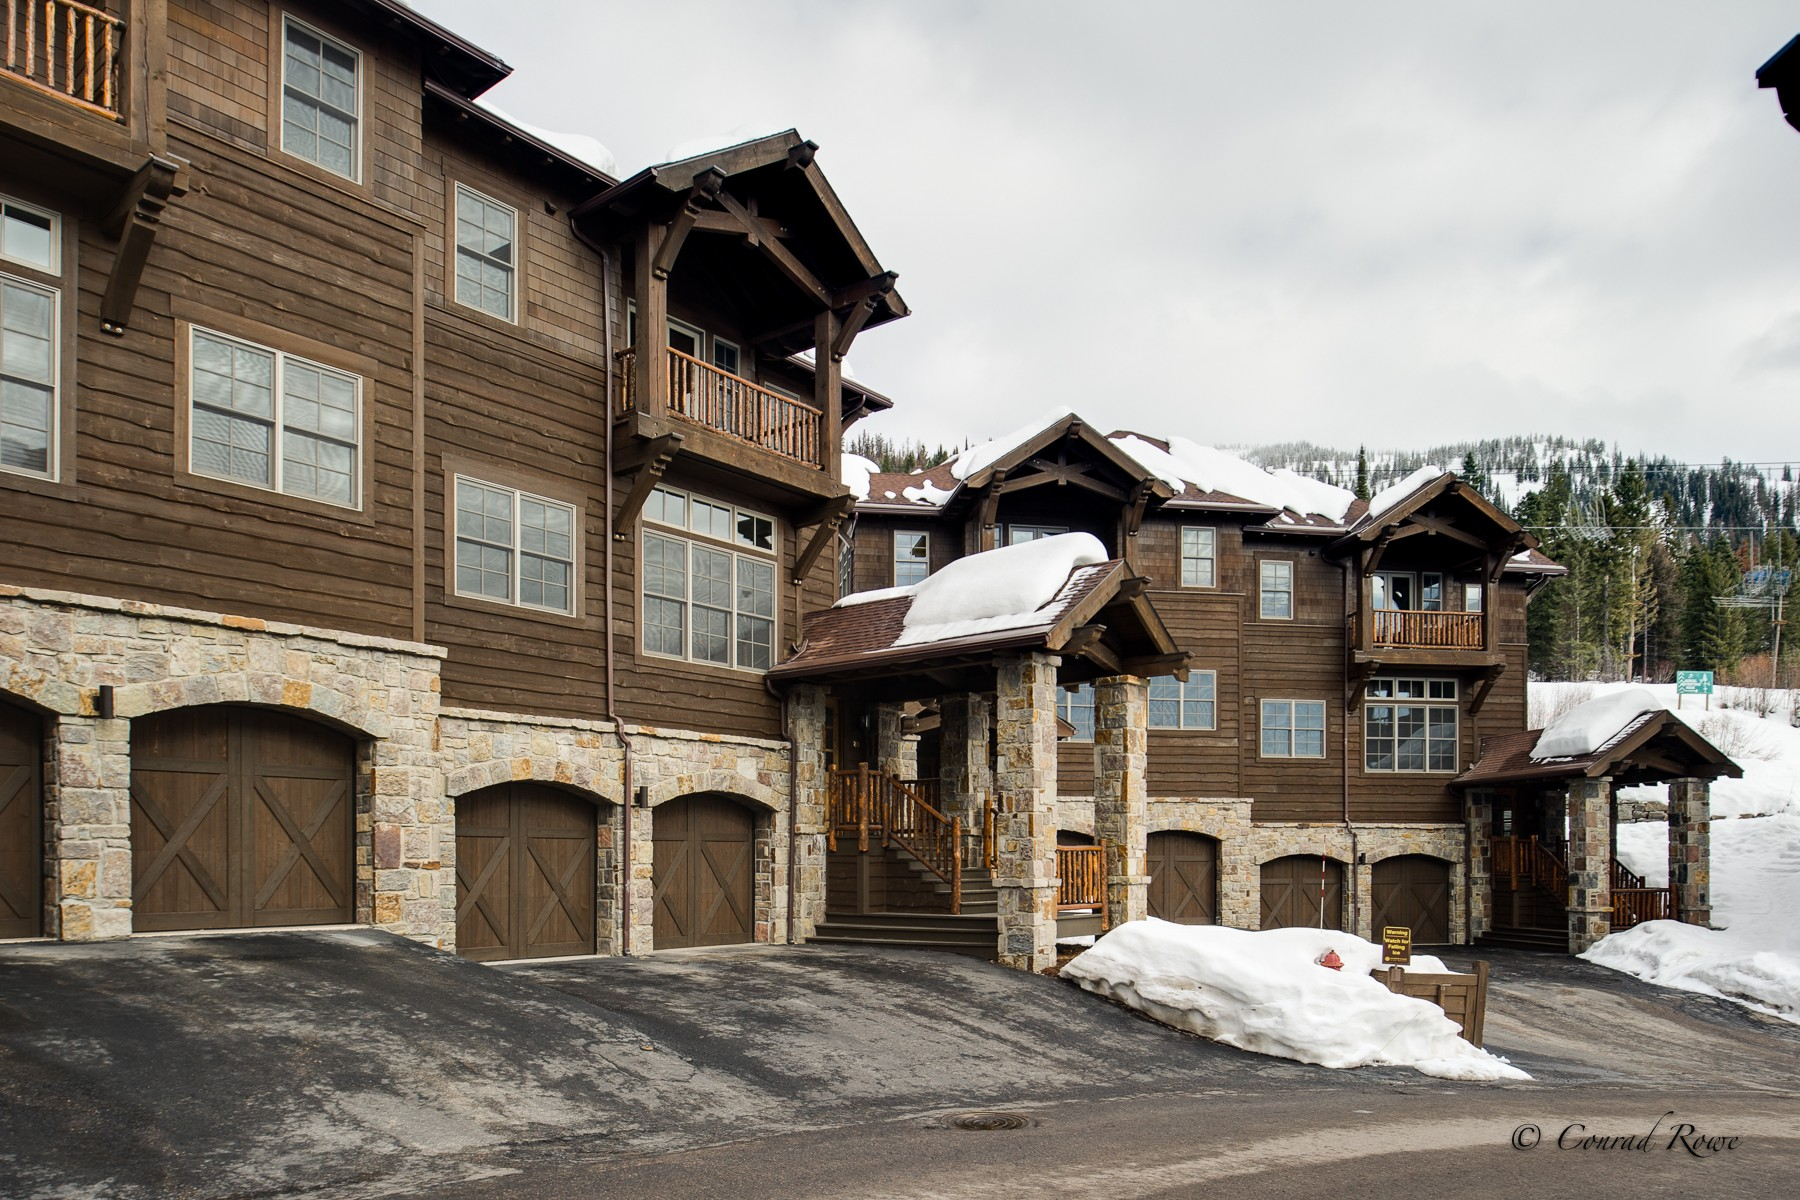 Condominium for Sale at 89 Slopeside Dr , Whitefish, MT 59937 89 Slopeside Dr Whitefish, Montana 59937 United States